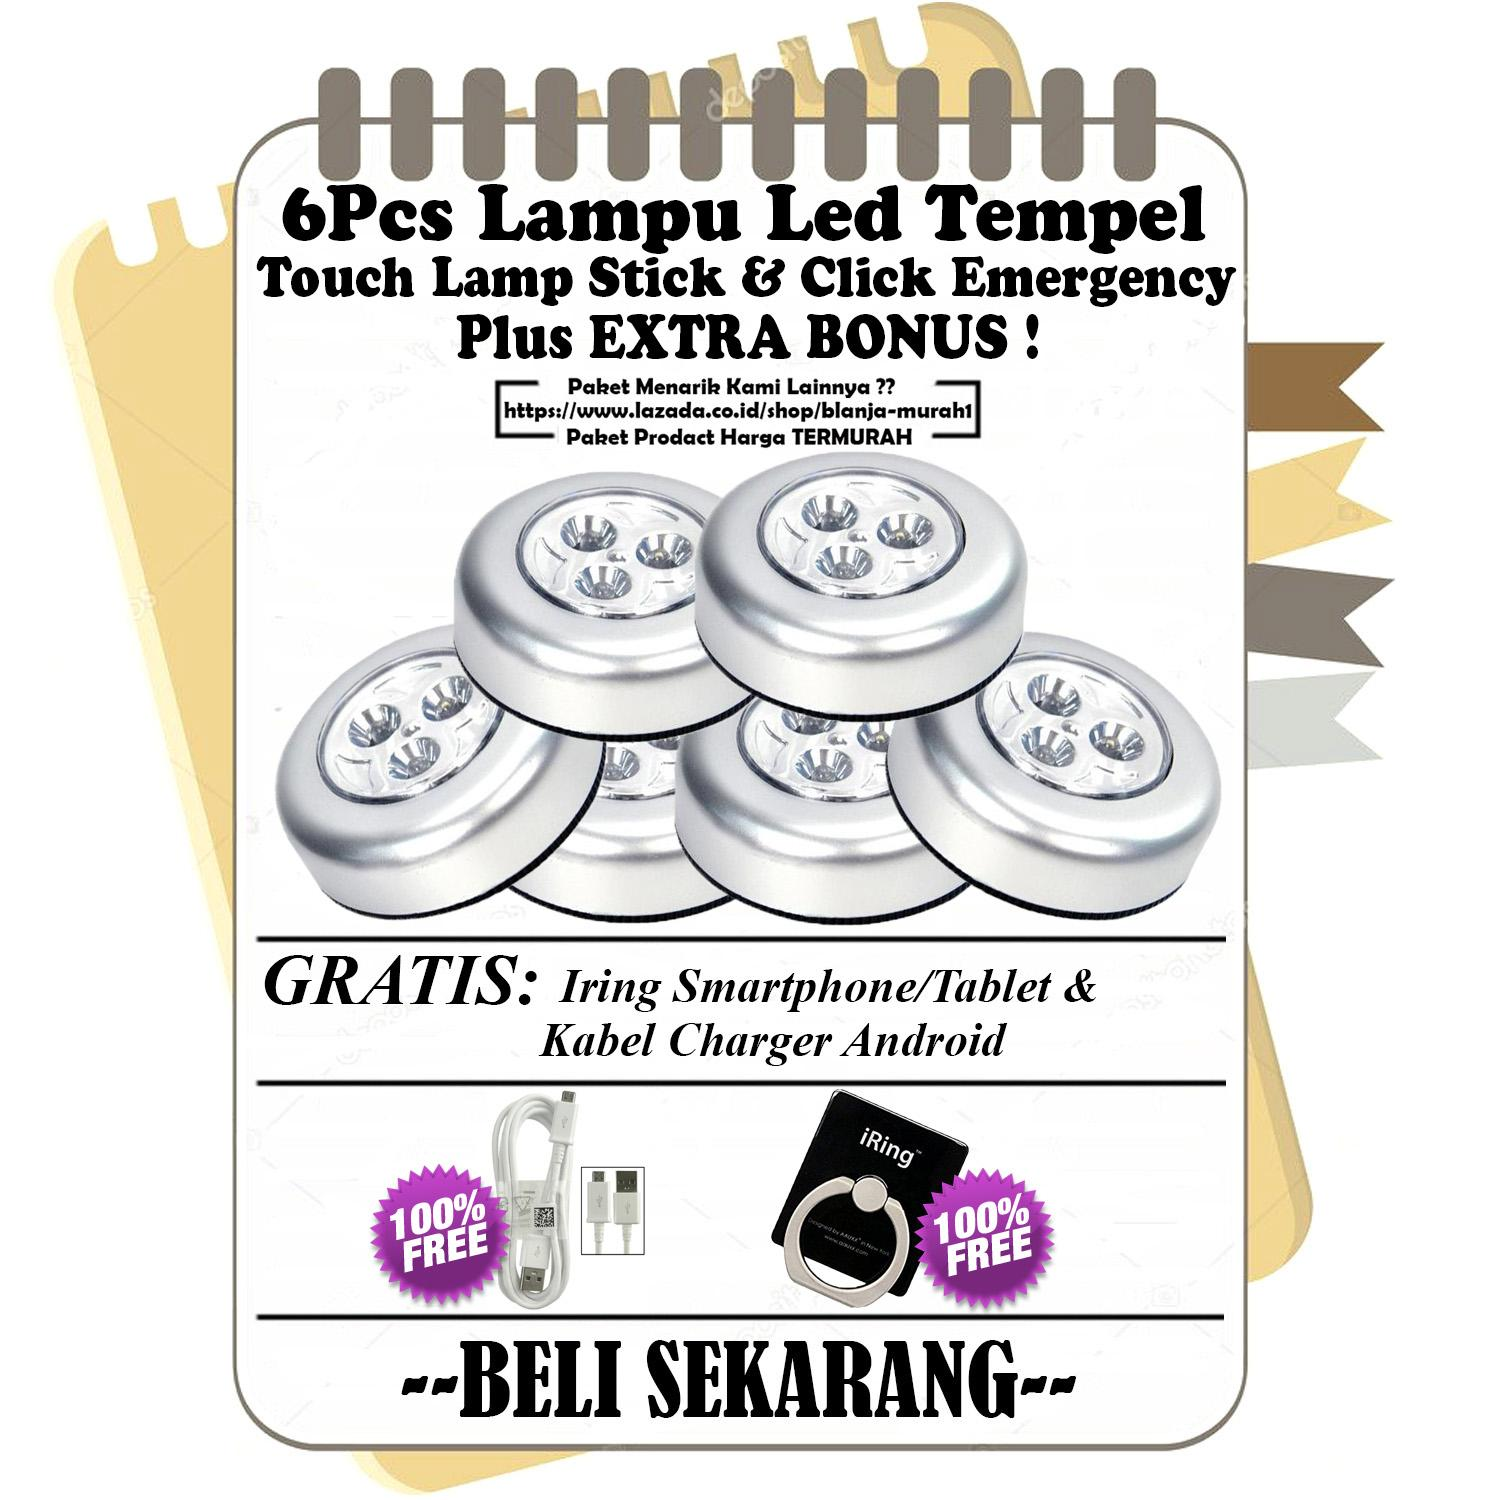 6Pcs Lampu Led Tempel / Touch Lamp Stick / Lampu Led Lemari Baju / Gudang / Lampu Belajar - Lampu Tempel LED - Touch Lamp Stick n Click Emergency - GRATIS Kabel Charger Micro Android & Iring Stand HP/Tablet